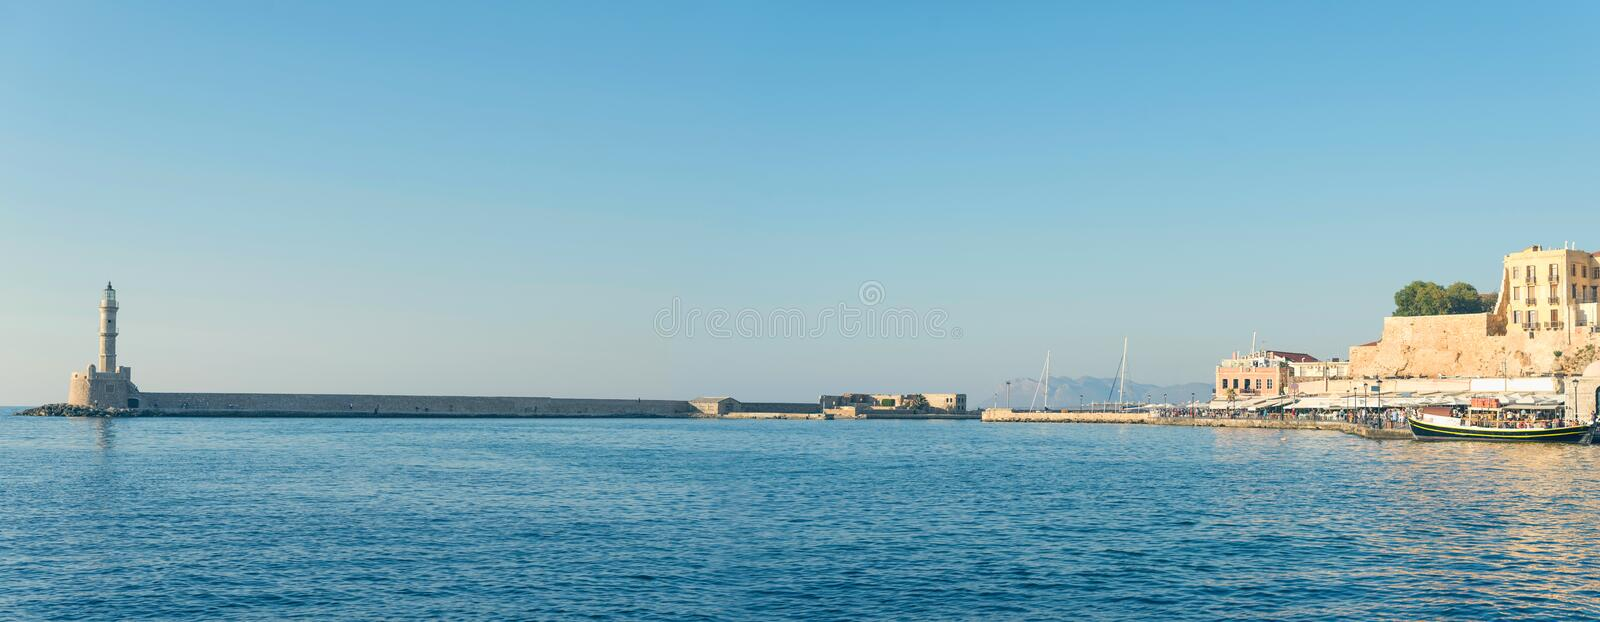 Panoramic view of the antiquity lighthouse in the old Venetian harbor Of Chania. Island of Crete. Greece royalty free stock image